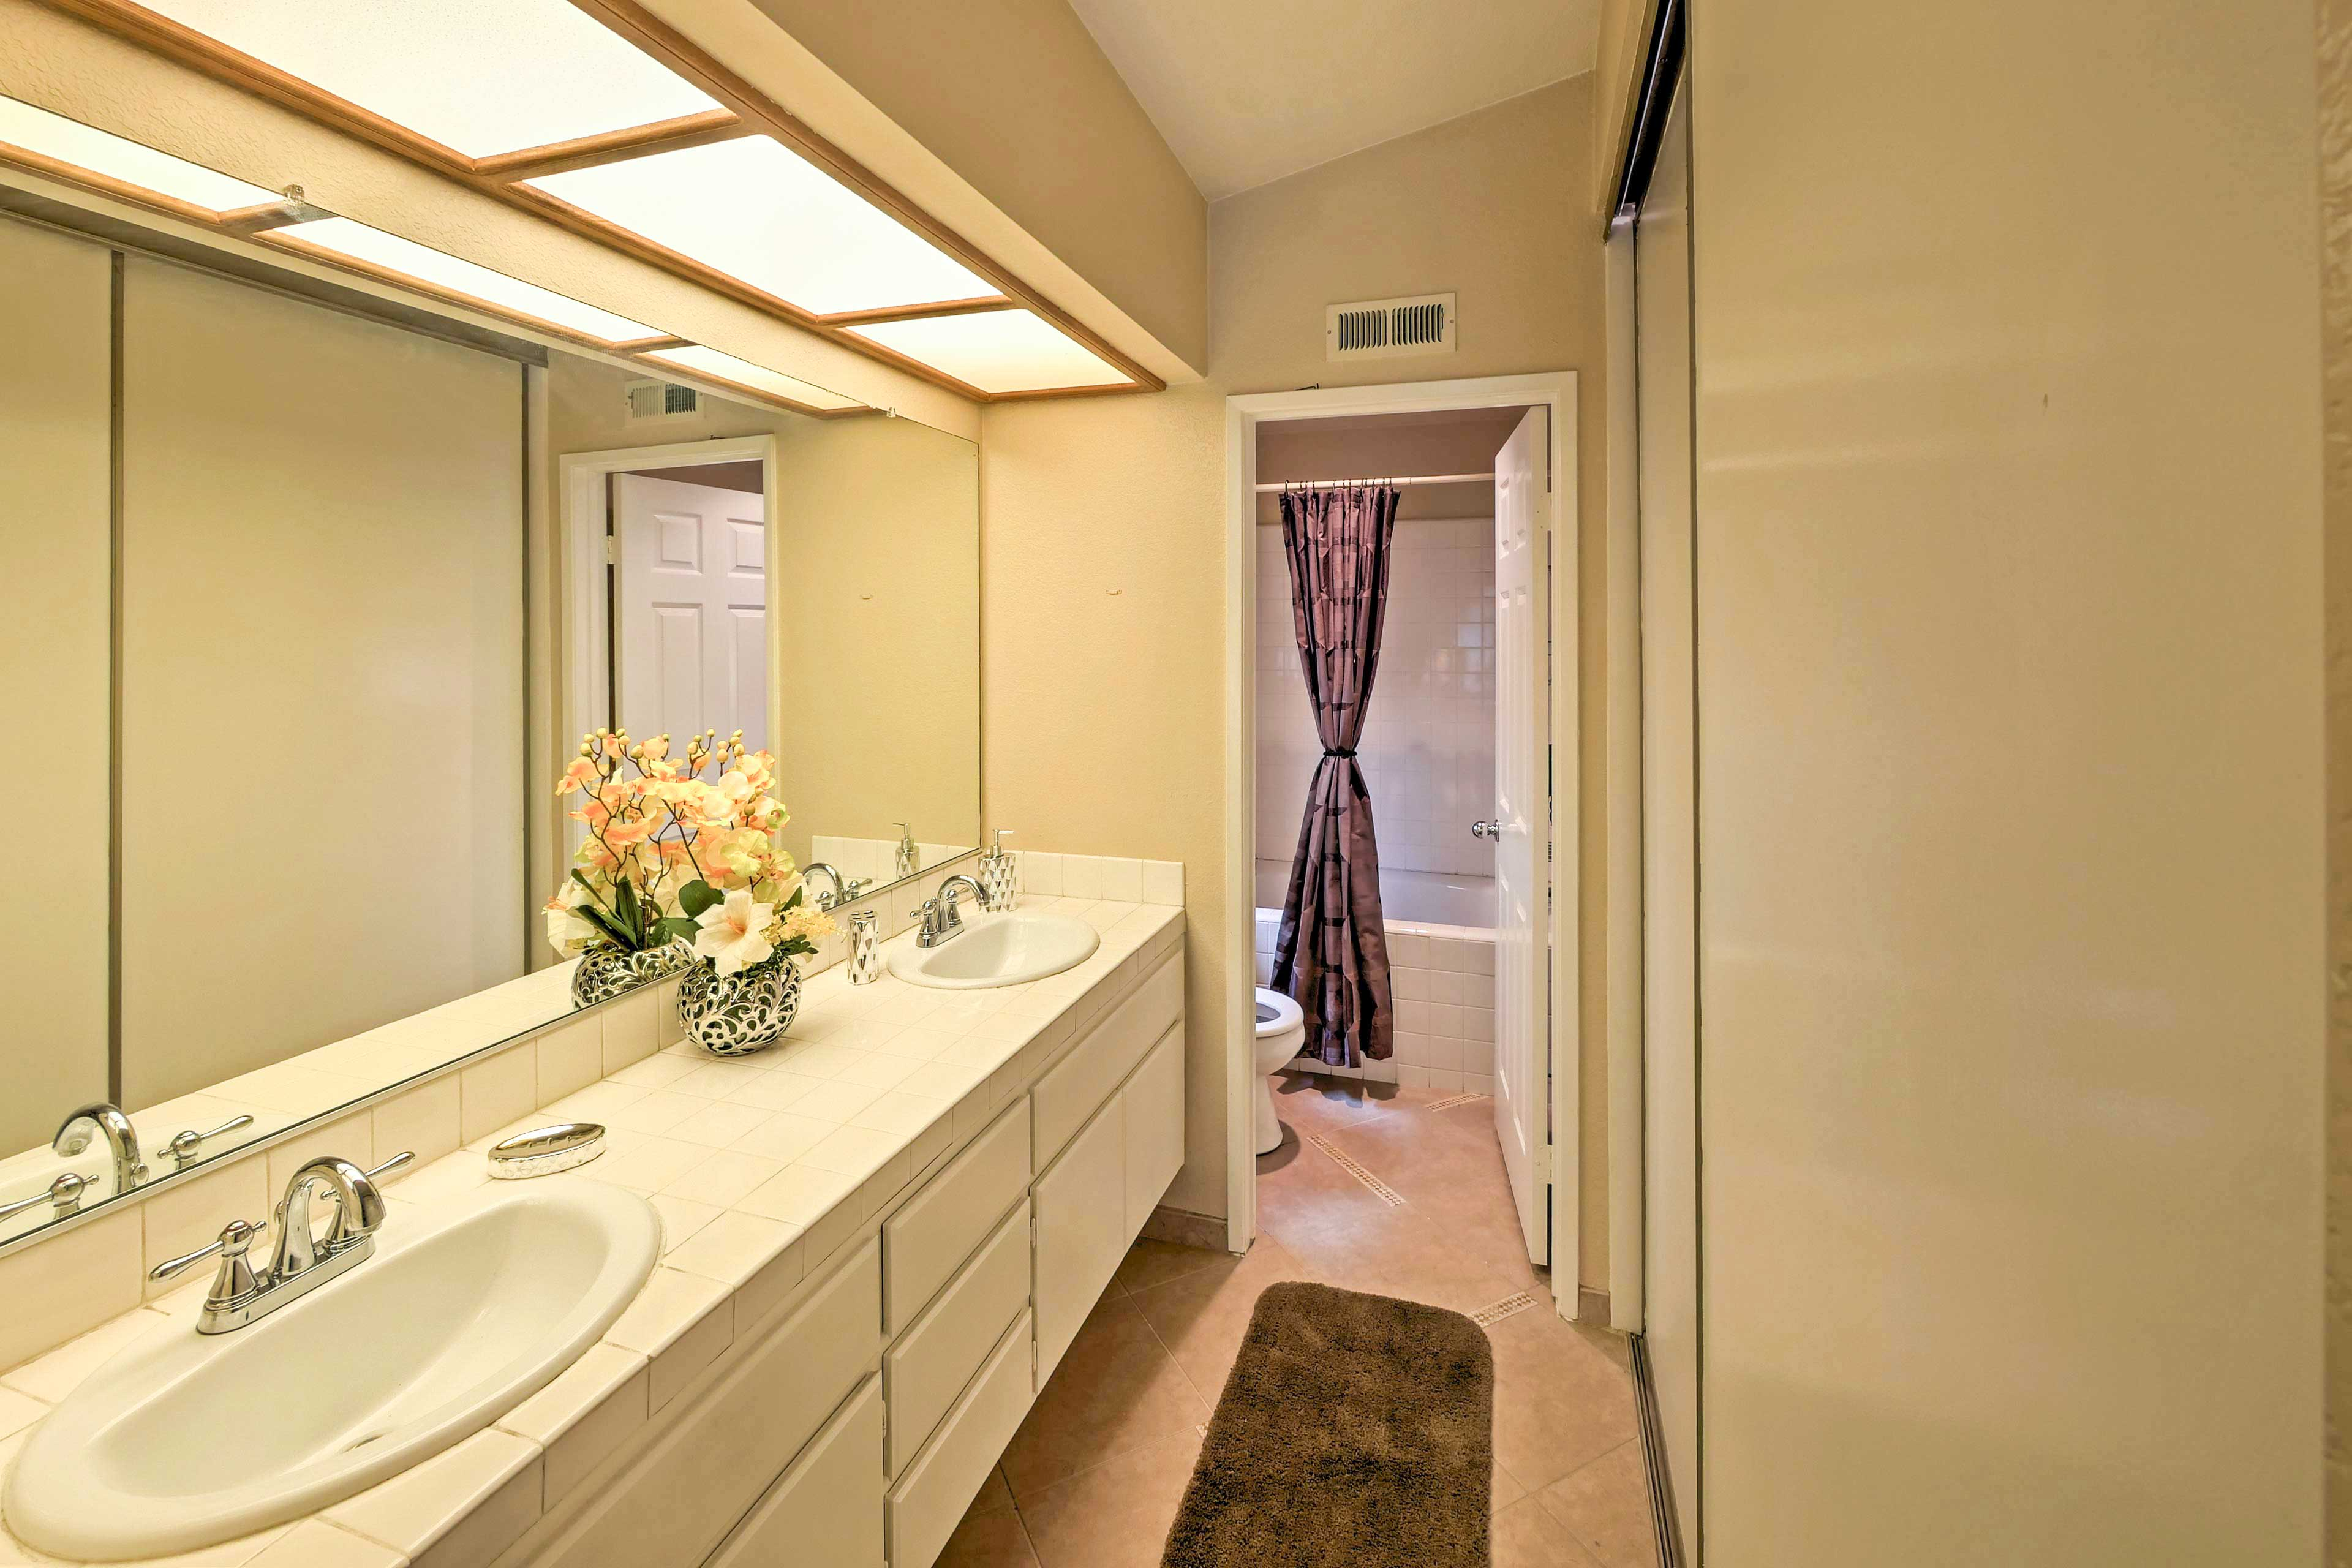 Rinse away your daily activities in the tidy master bathroom.